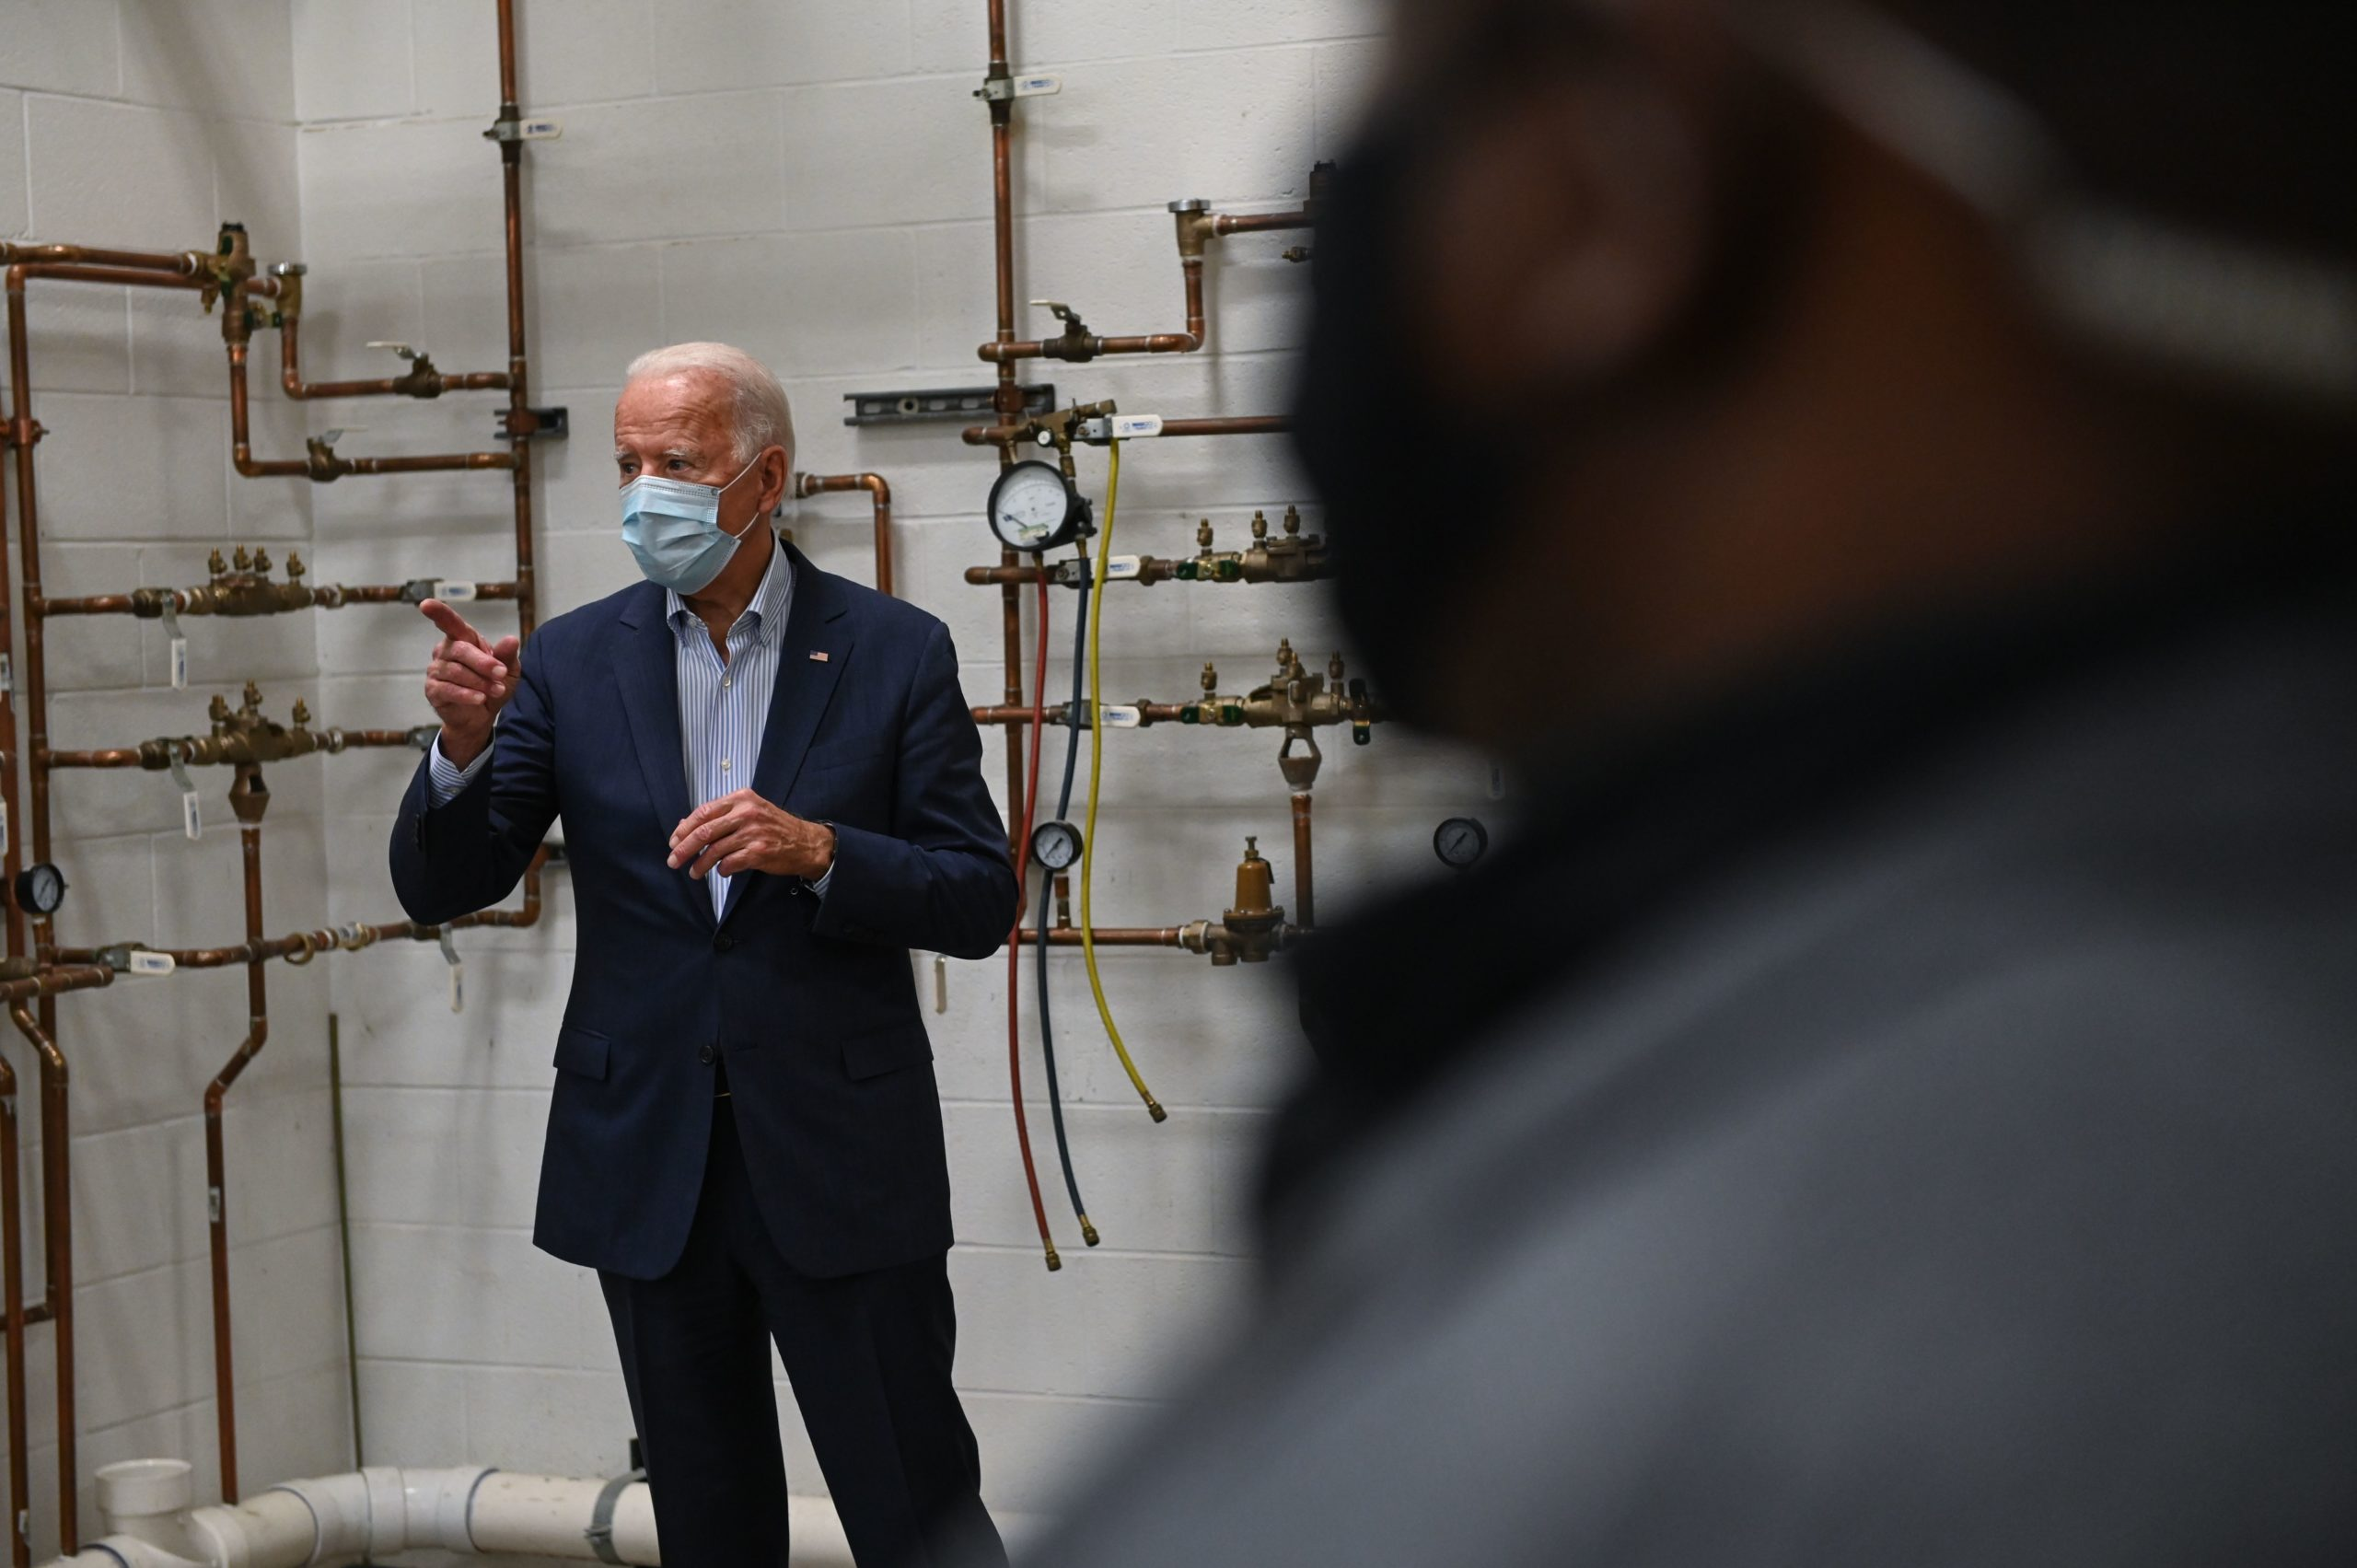 President Joe Biden tours a local plumbers union training center in Erie, Pennsylvania on Oct. 10. (Roberto Schmidt/AFP via Getty Images)